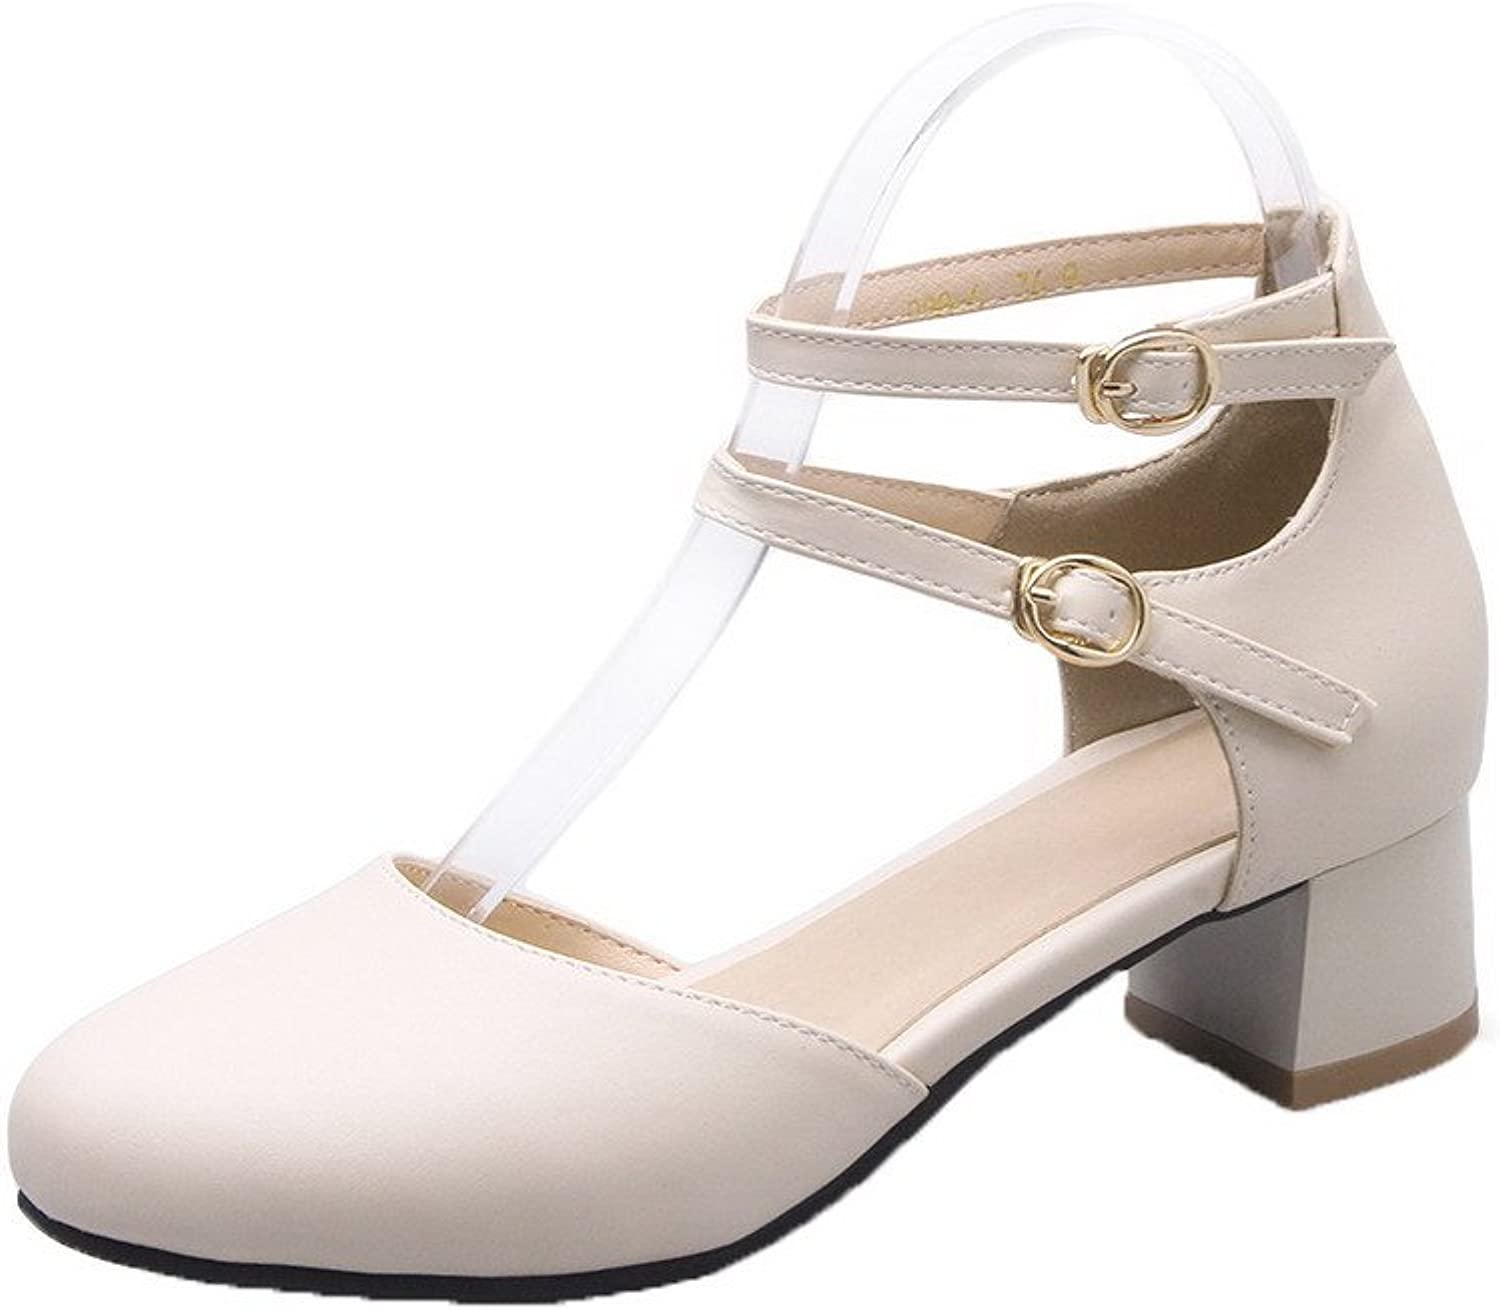 AmoonyFashion Women's Soft Material Buckle Round-Toe Low-Heels Solid Pumps-shoes